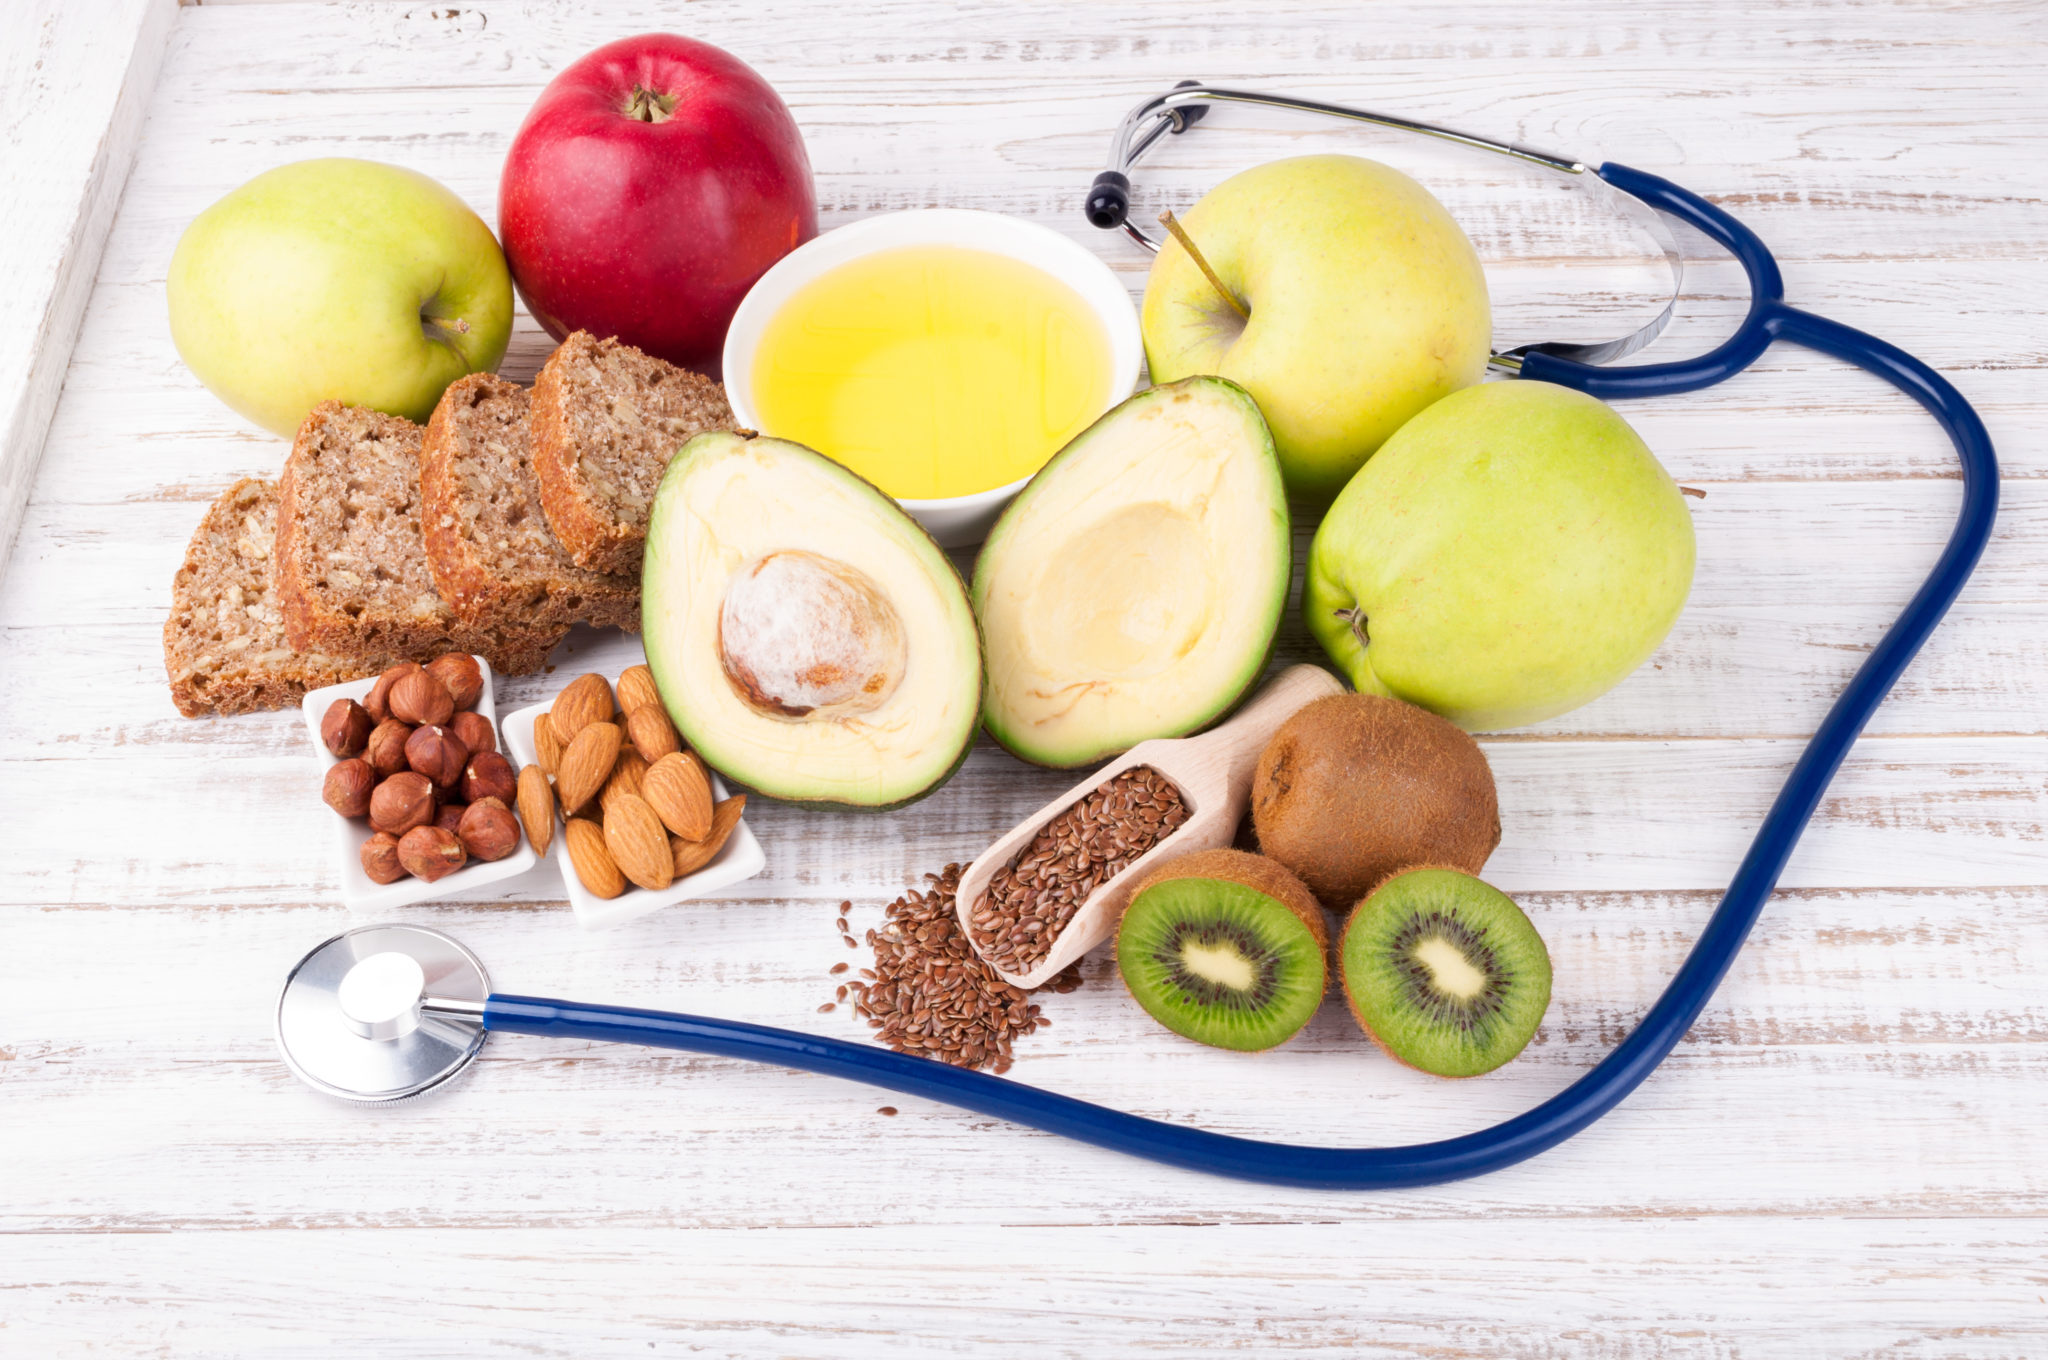 The importance of nutrition and dietary guidance